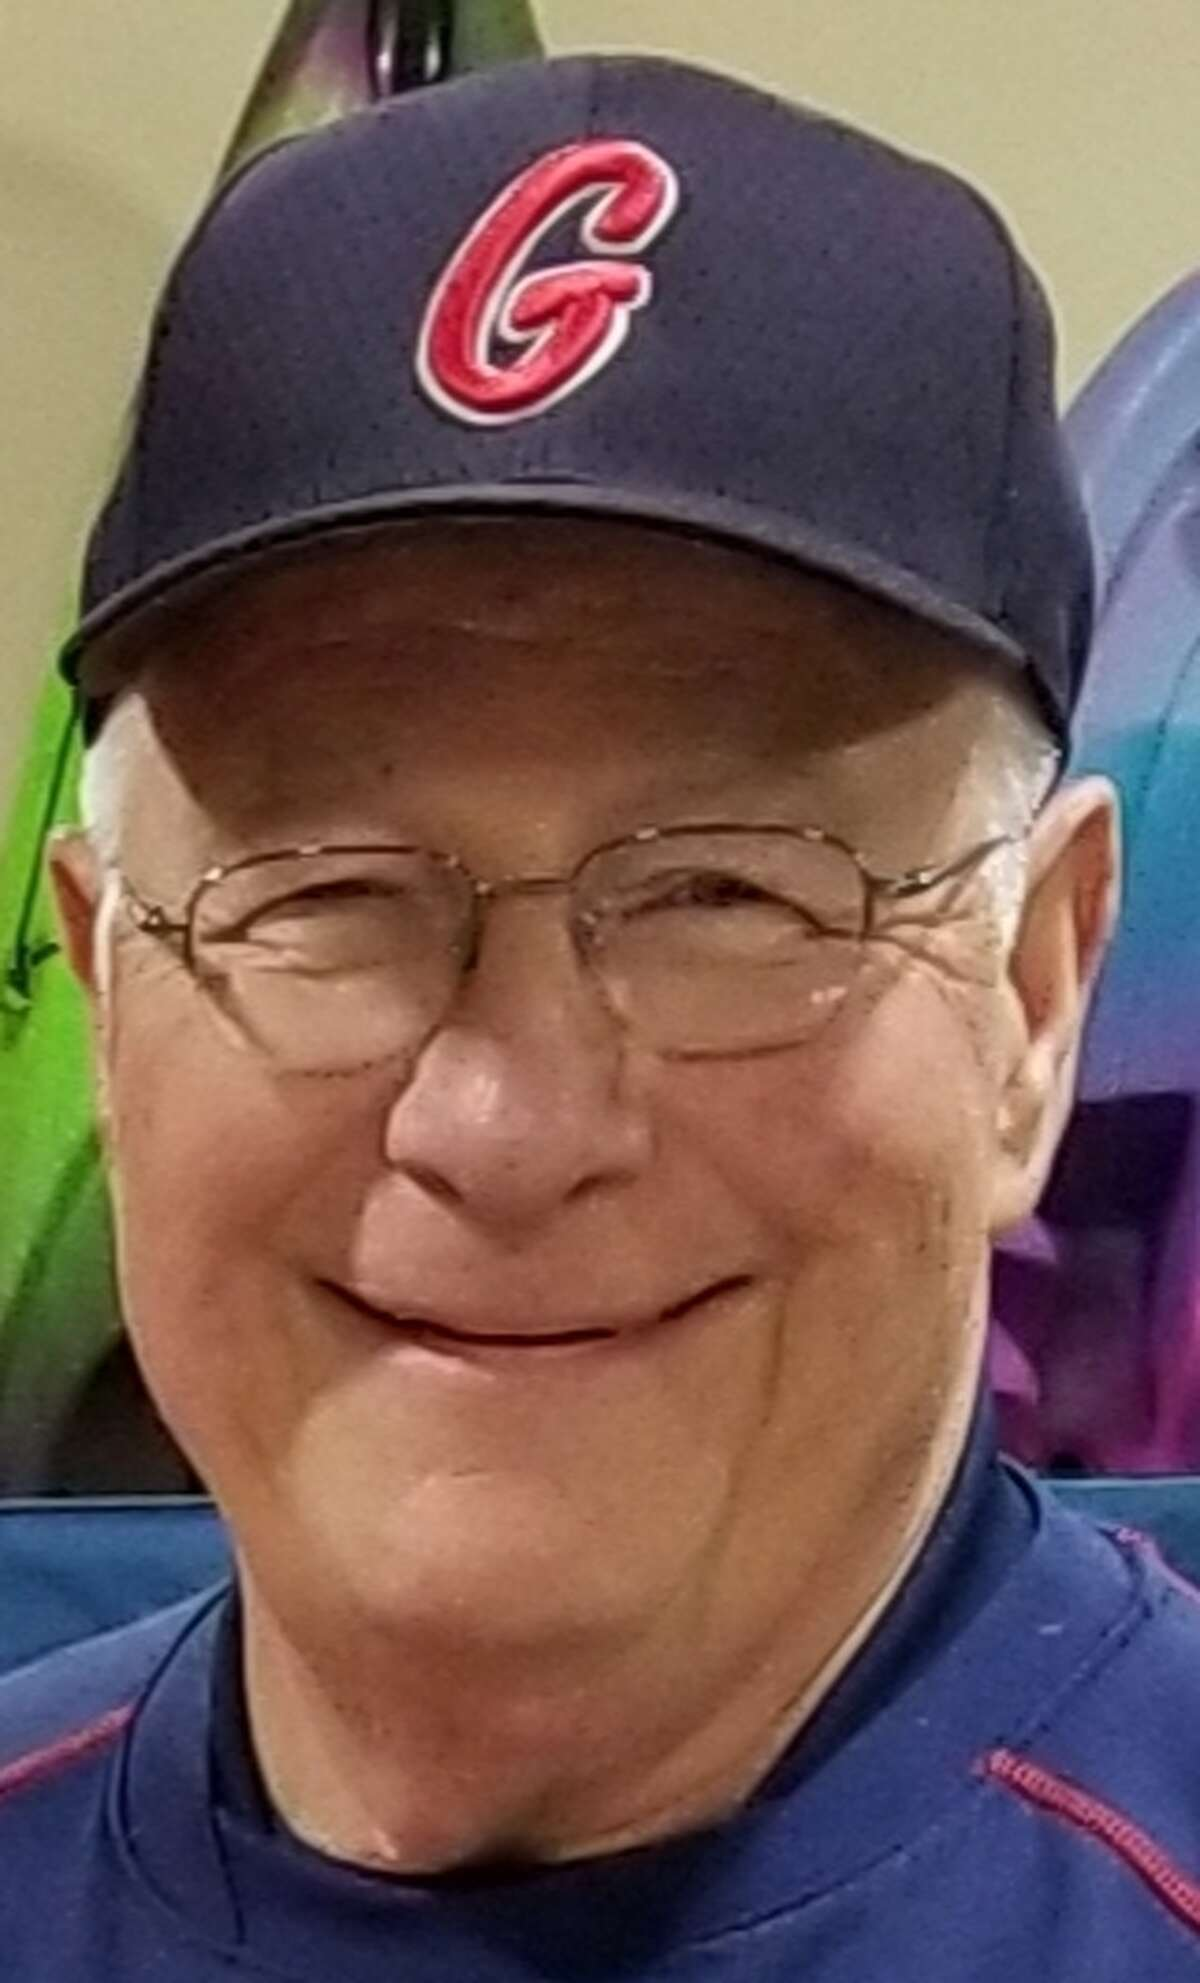 Post 171 manager Terry Brokoff